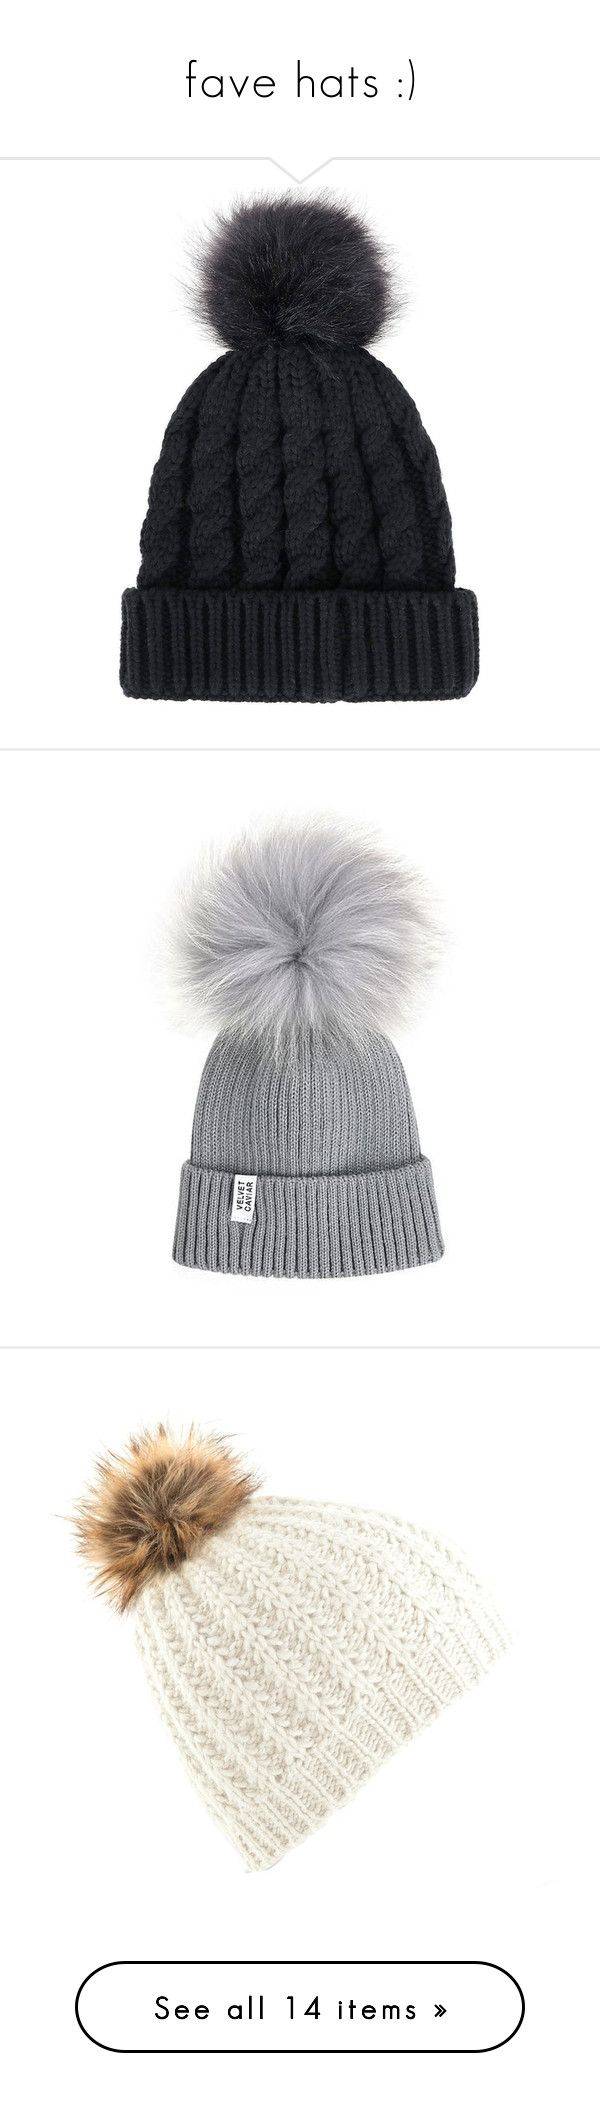 """""""fave hats :)"""" by surfernurd ❤ liked on Polyvore featuring accessories, hats, beanie, pom pom hat, beanie caps, faux fur pom pom hat, faux fur hat, pom beanie, accessories hats and toca"""